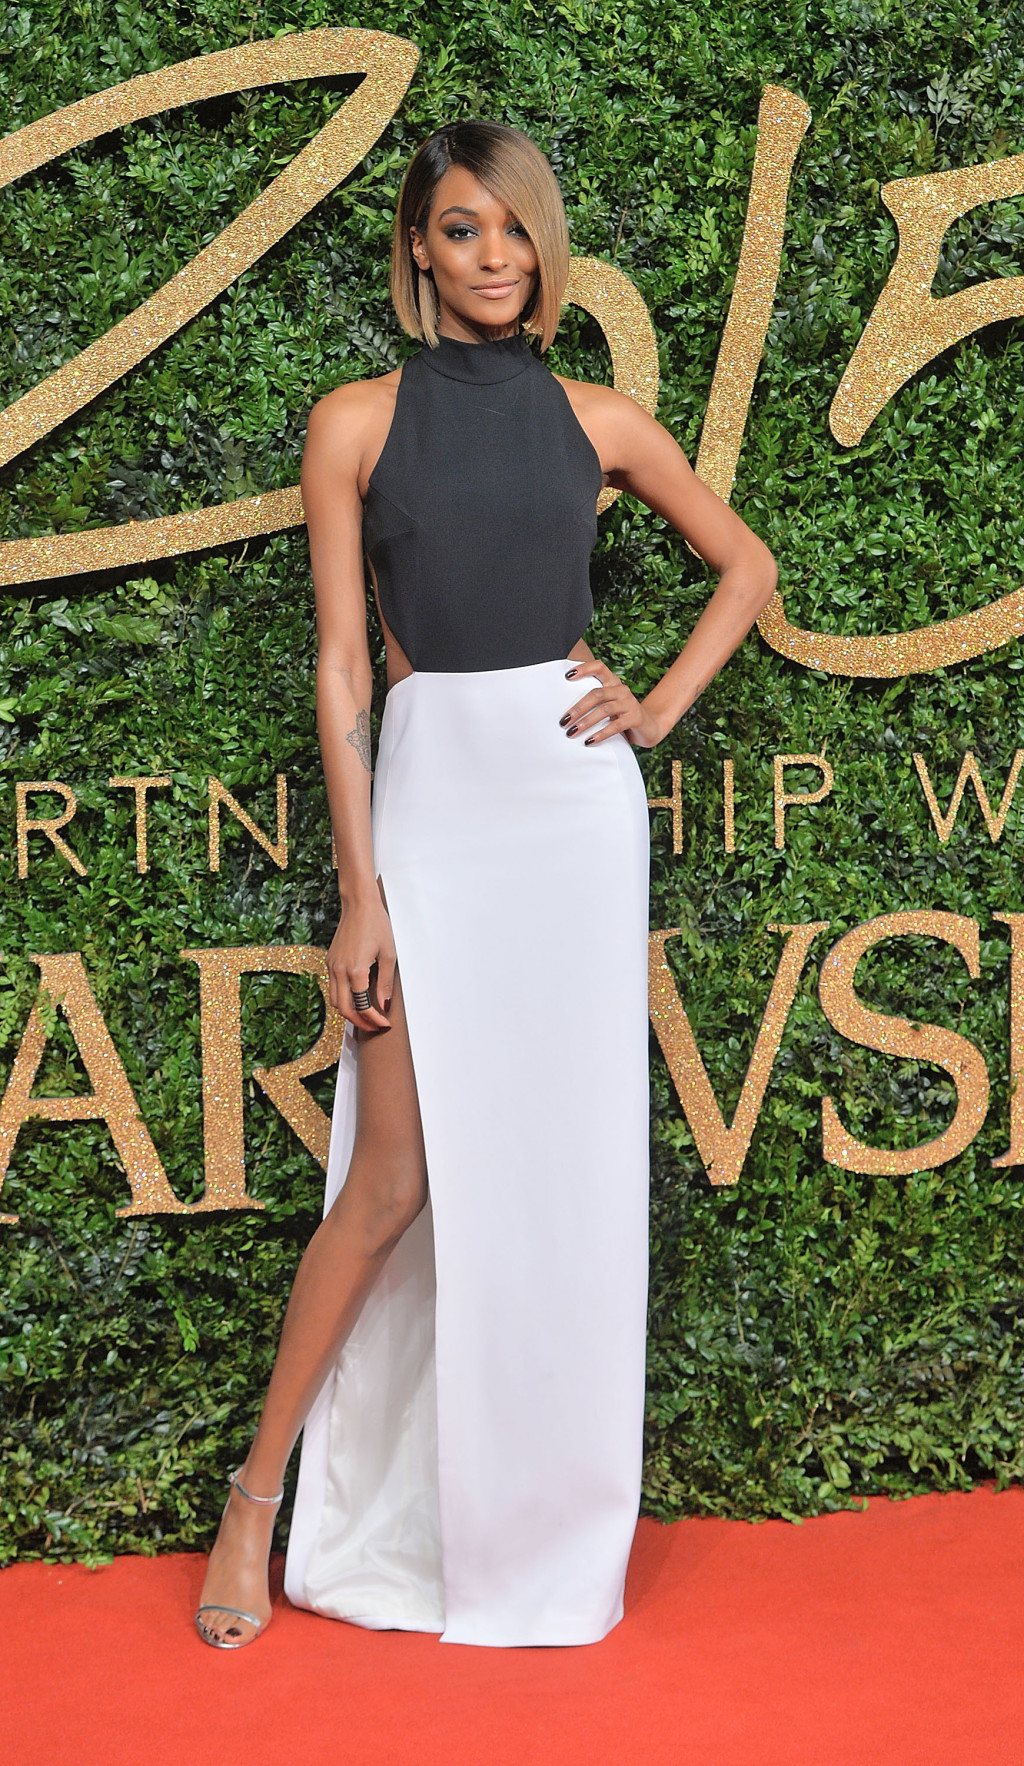 The 10 Best Looks from the 2015 British Fashion Awards